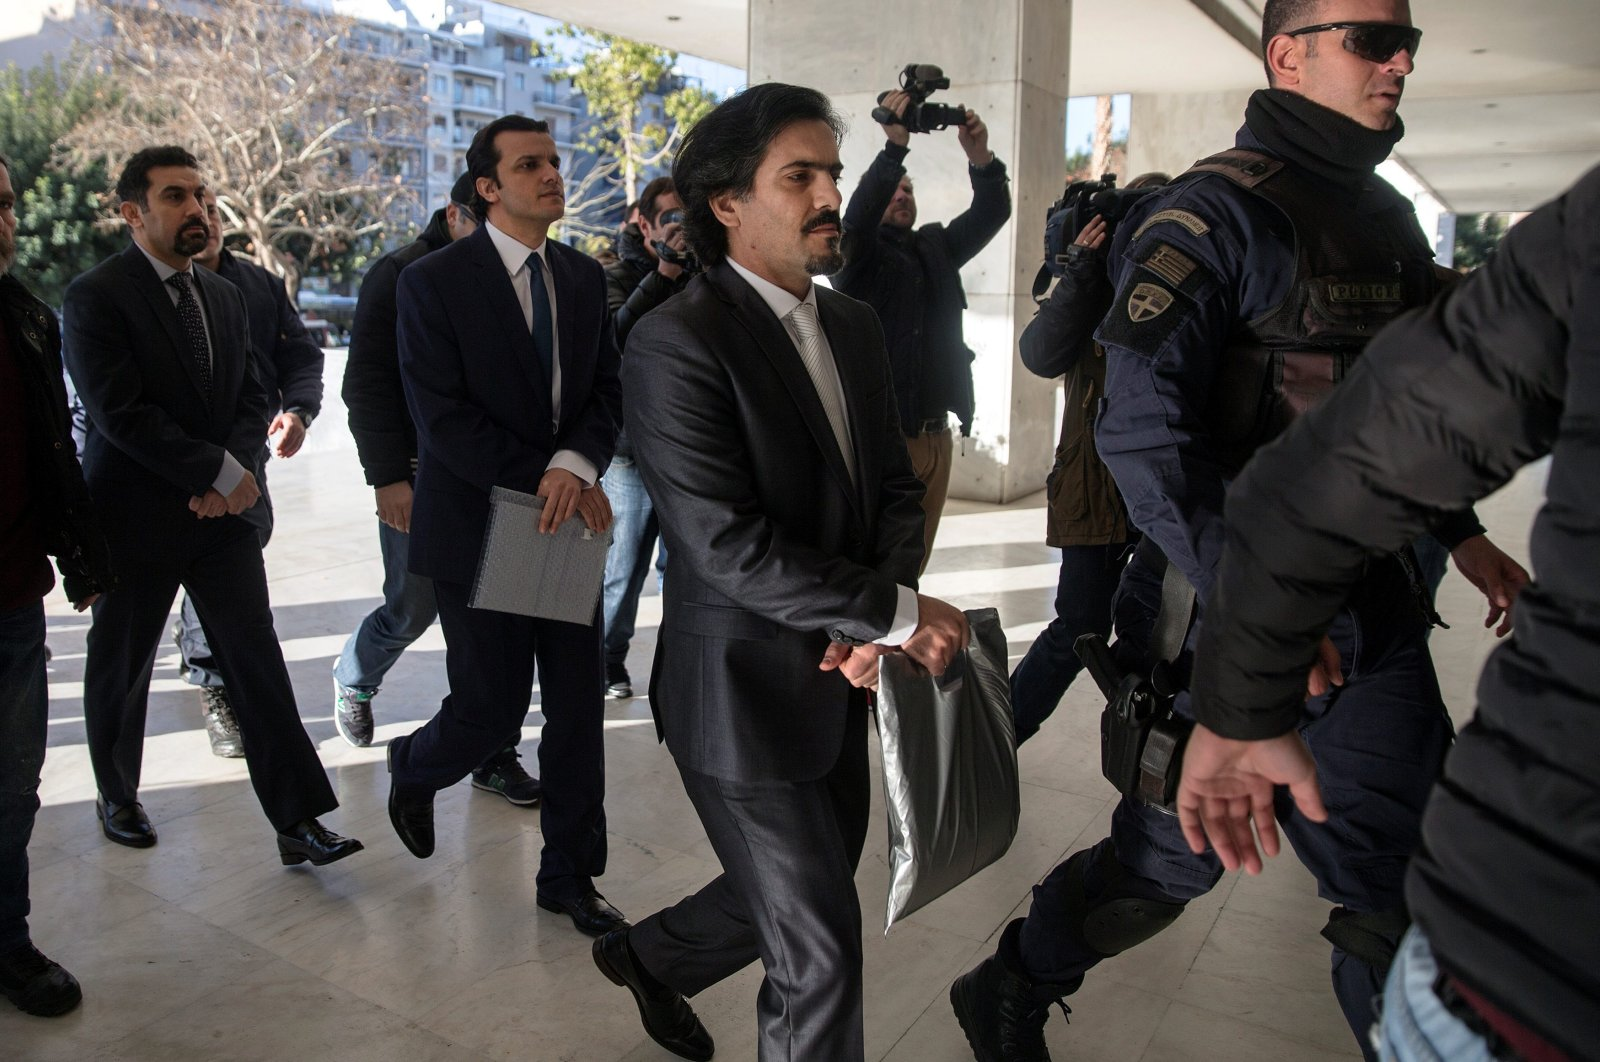 Three of the eight Turkish soldiers (C, 2nd L and L), who fled to Greece in a helicopter and requested political asylum after a failed military coup against the government, are escorted by police officers as they arrive at the Supreme Court in Athens, Greece, Jan. 13, 2017. (Reuters Photo)